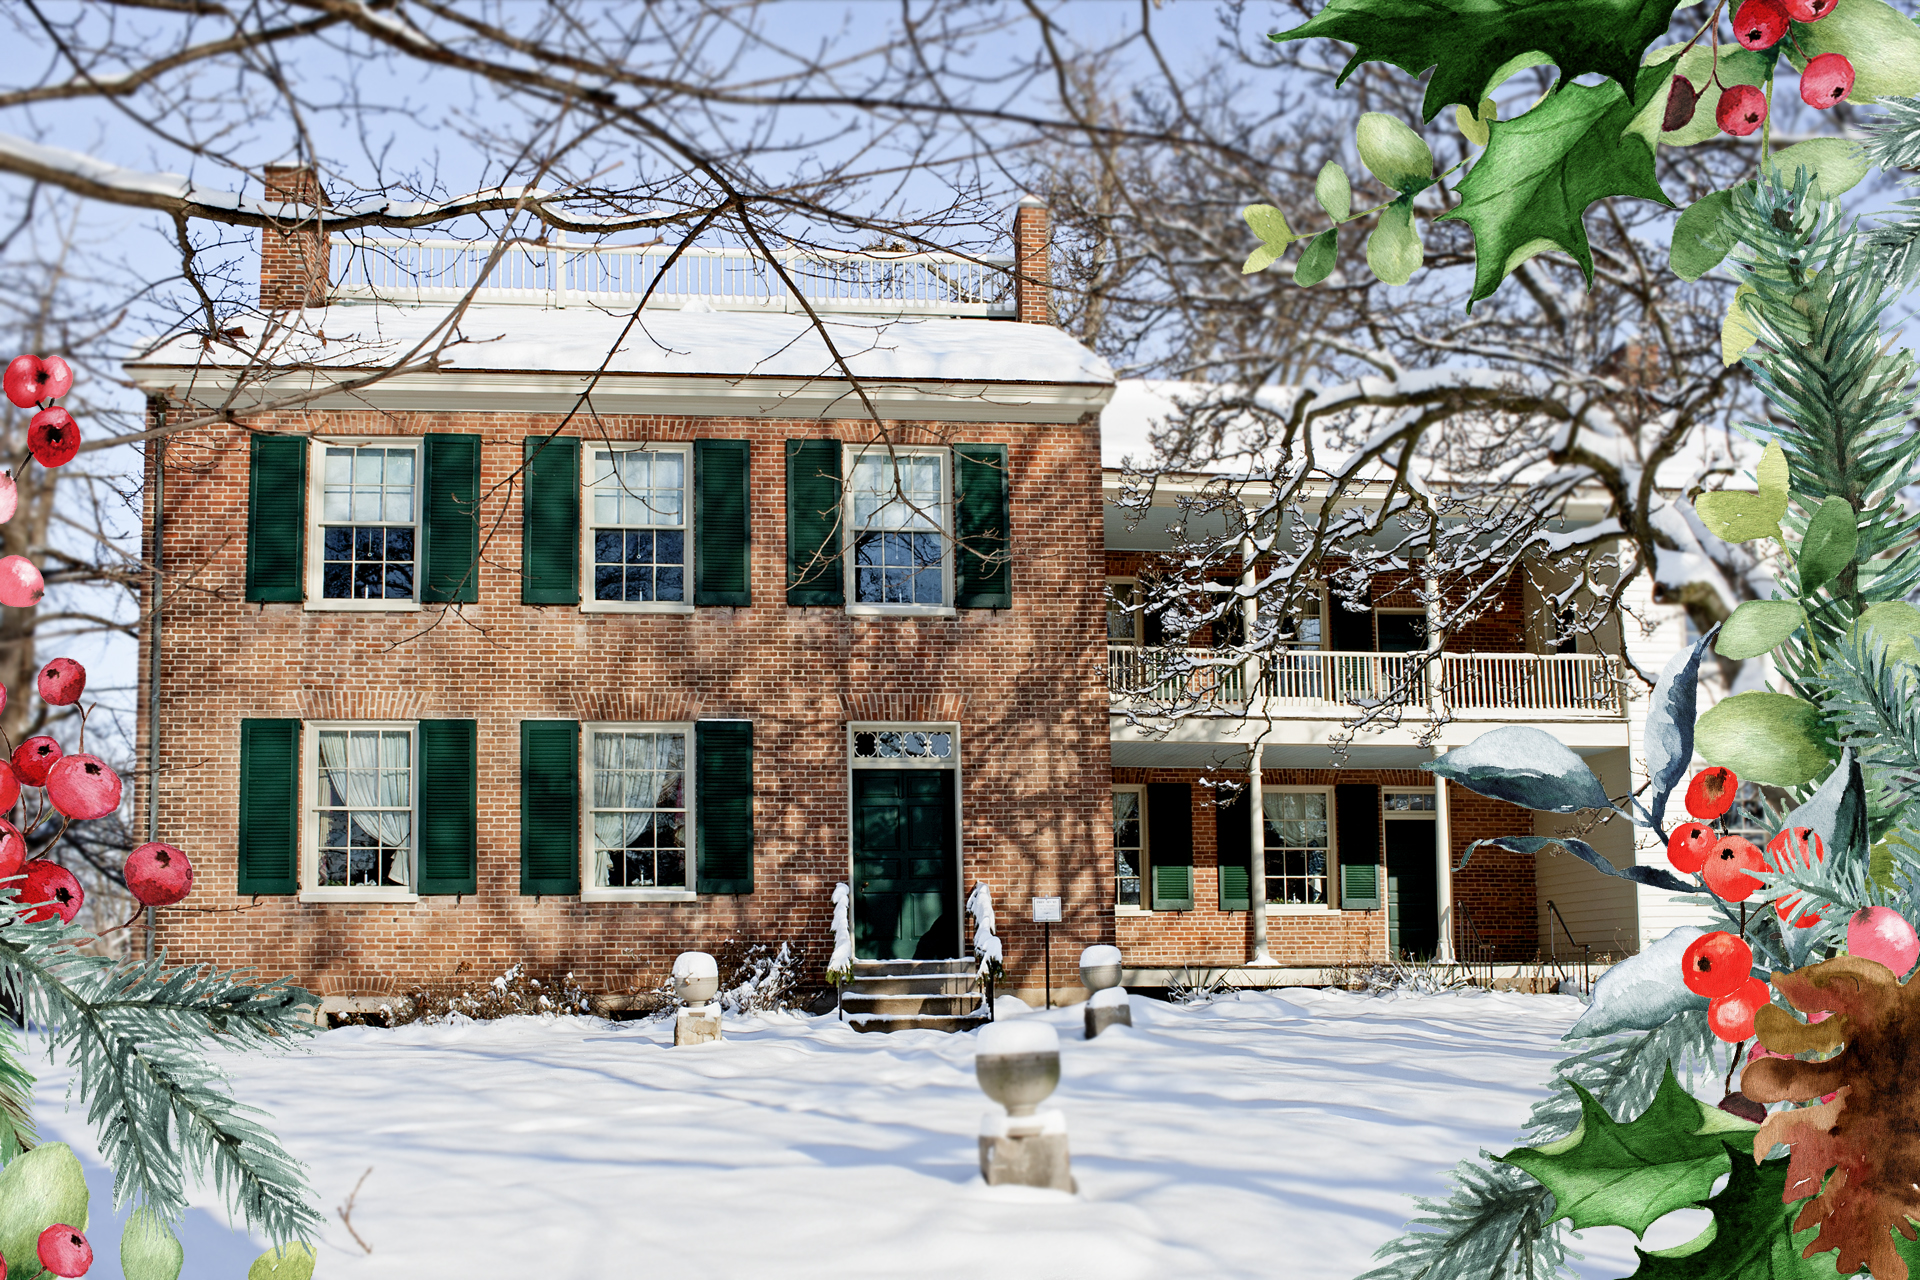 A festive frame of greenery is overlaid on a image of the Wylie House covered in snow.